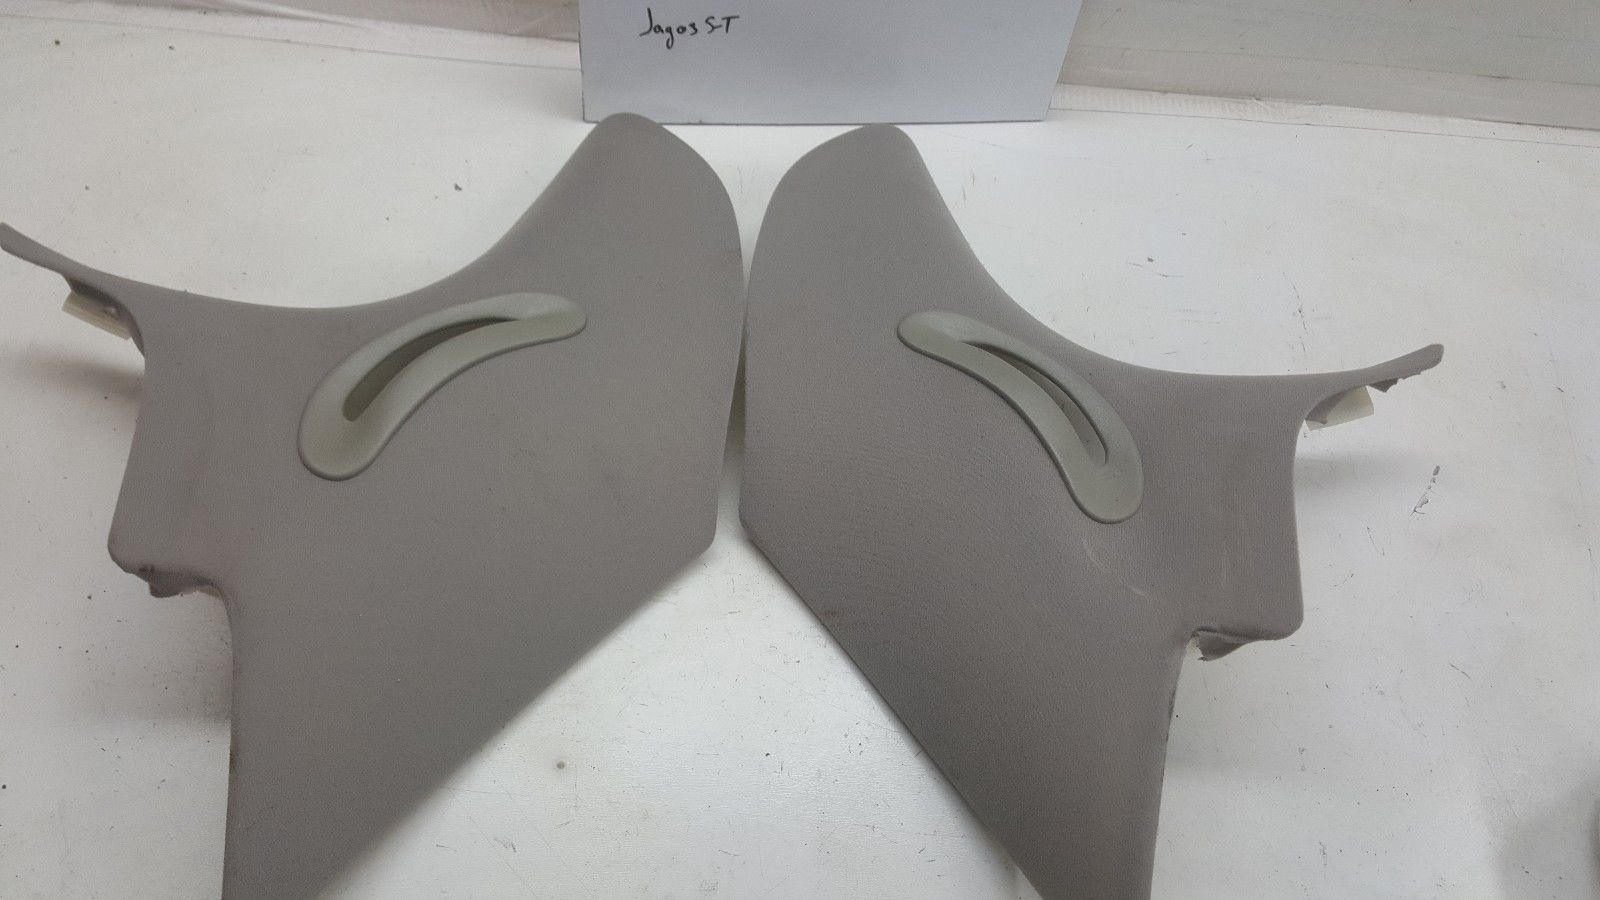 Jaguar S-TYPE C PILLAR GRAY PILLARS MOLDINGS 2003-2004-05-06-07-08